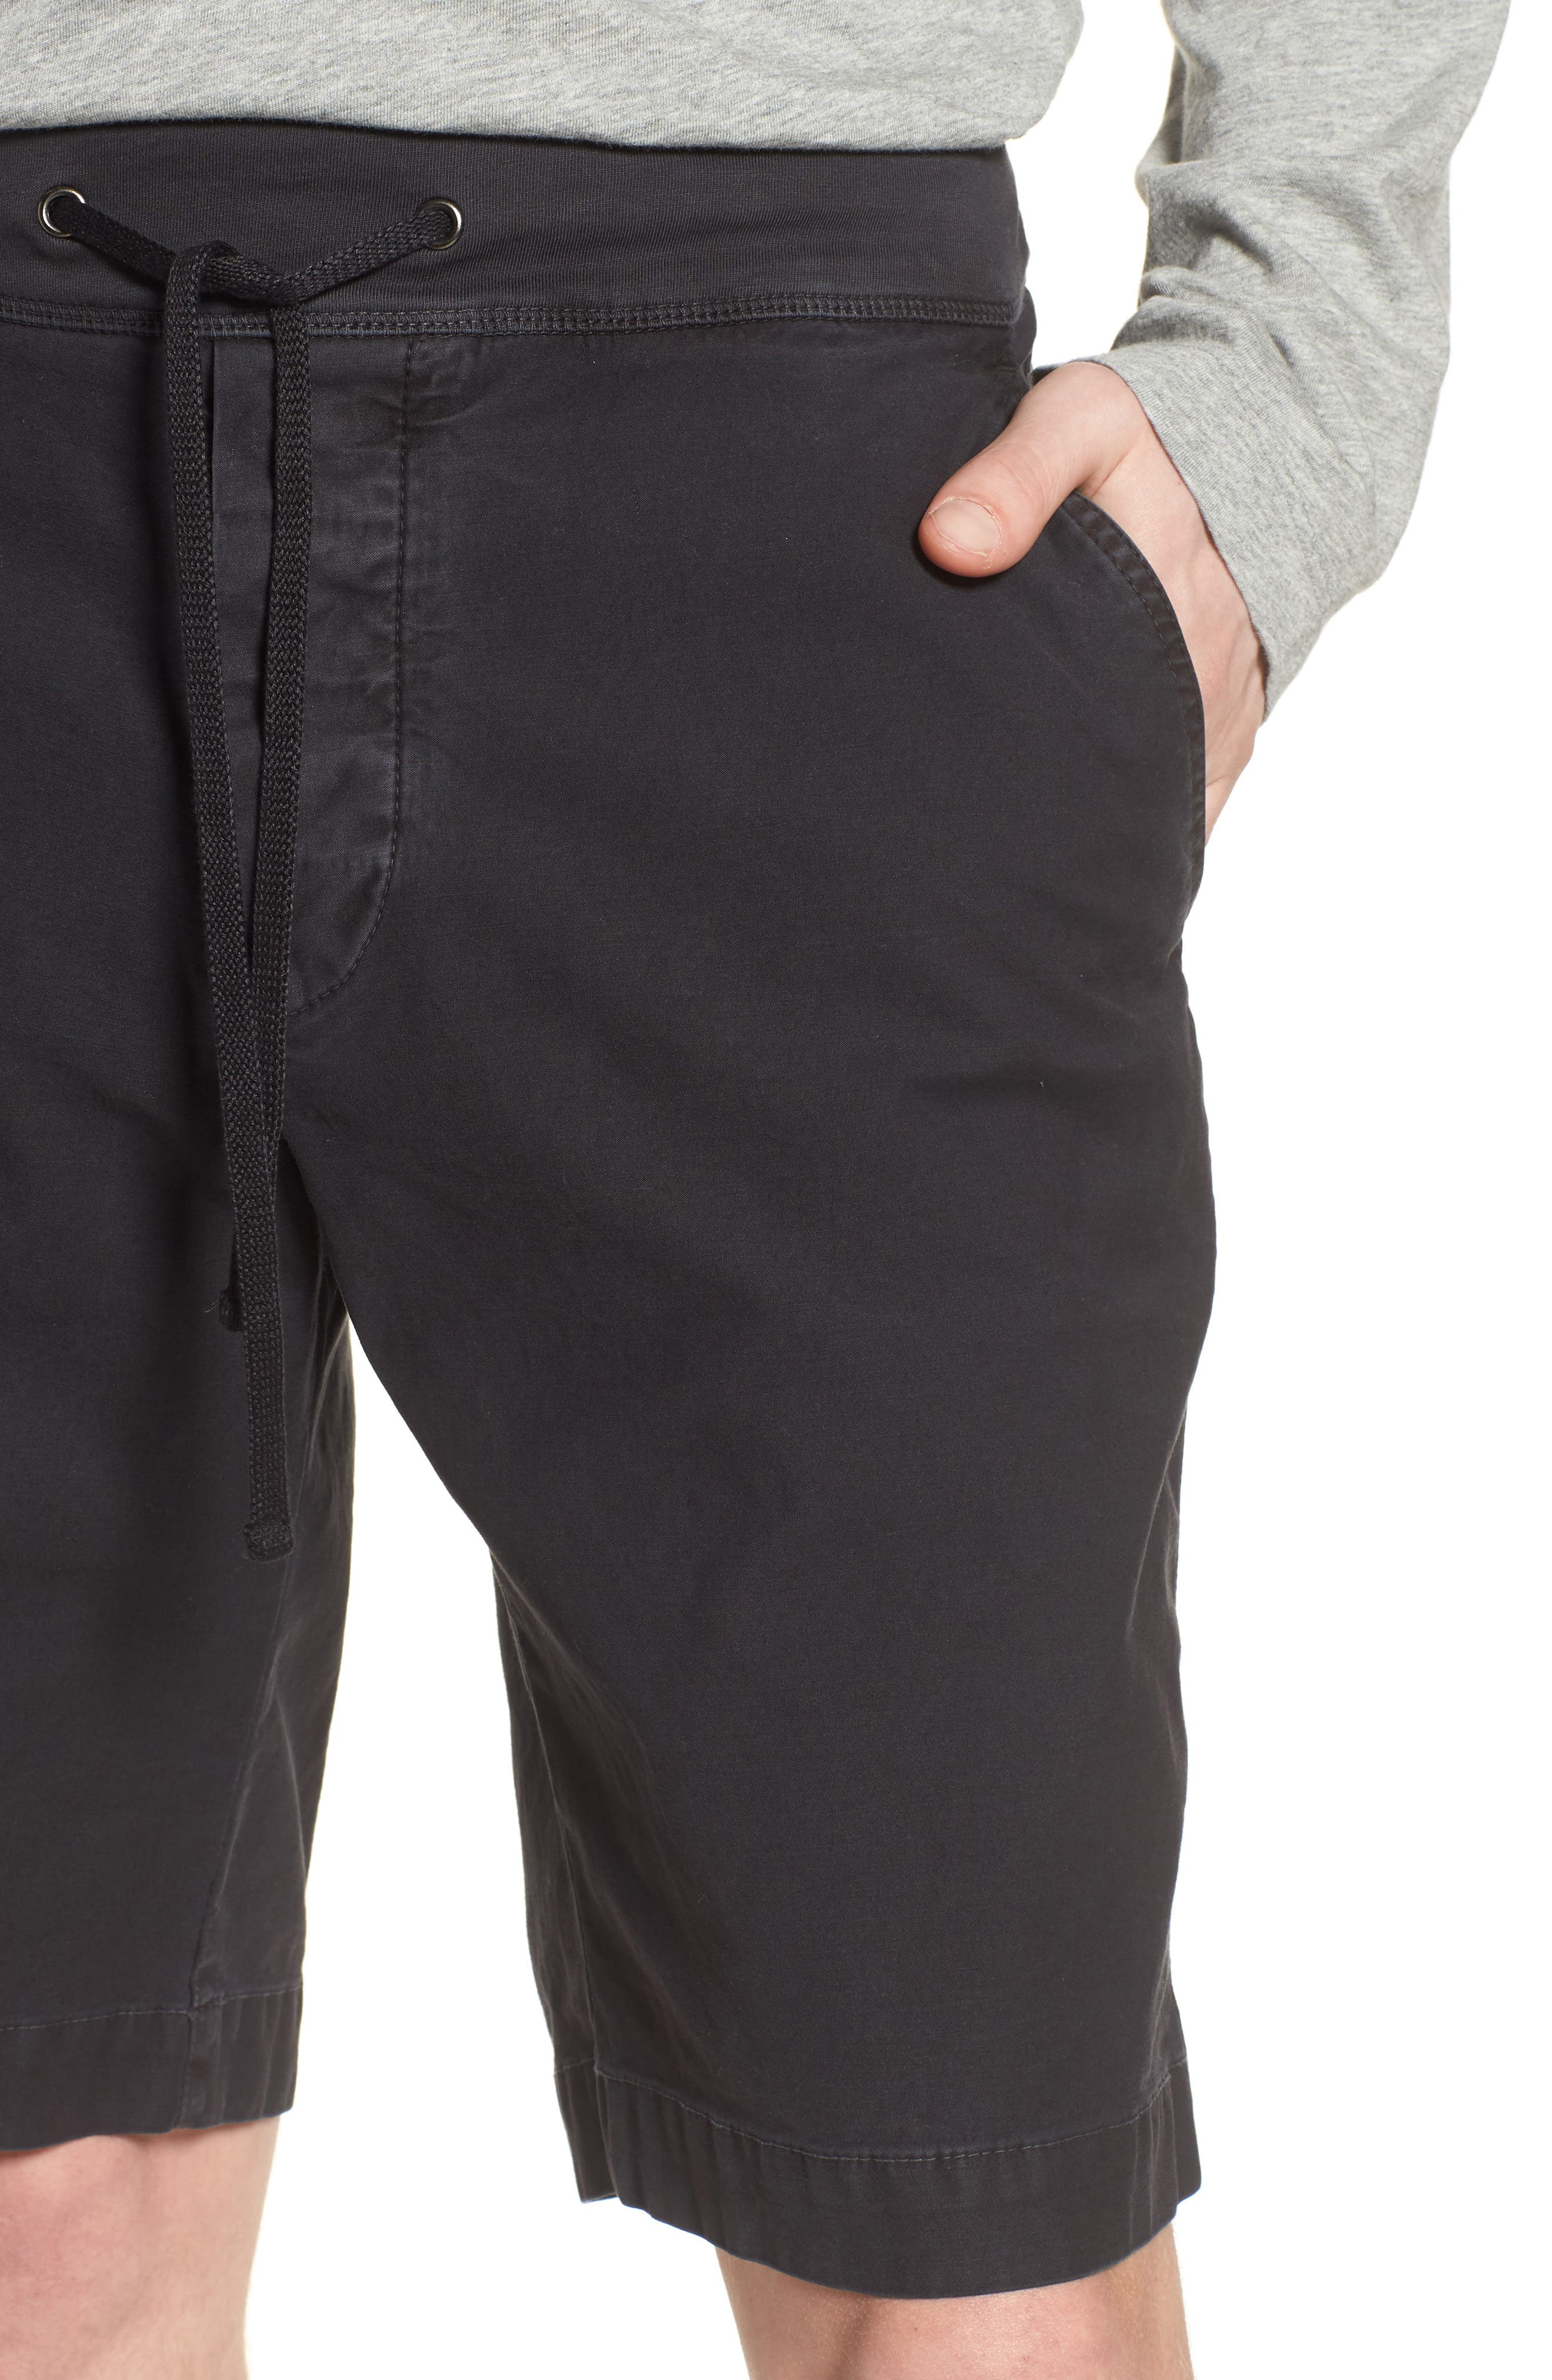 JAMES PERSE,                             Compact Stretch Cotton Shorts,                             Alternate thumbnail 4, color,                             020